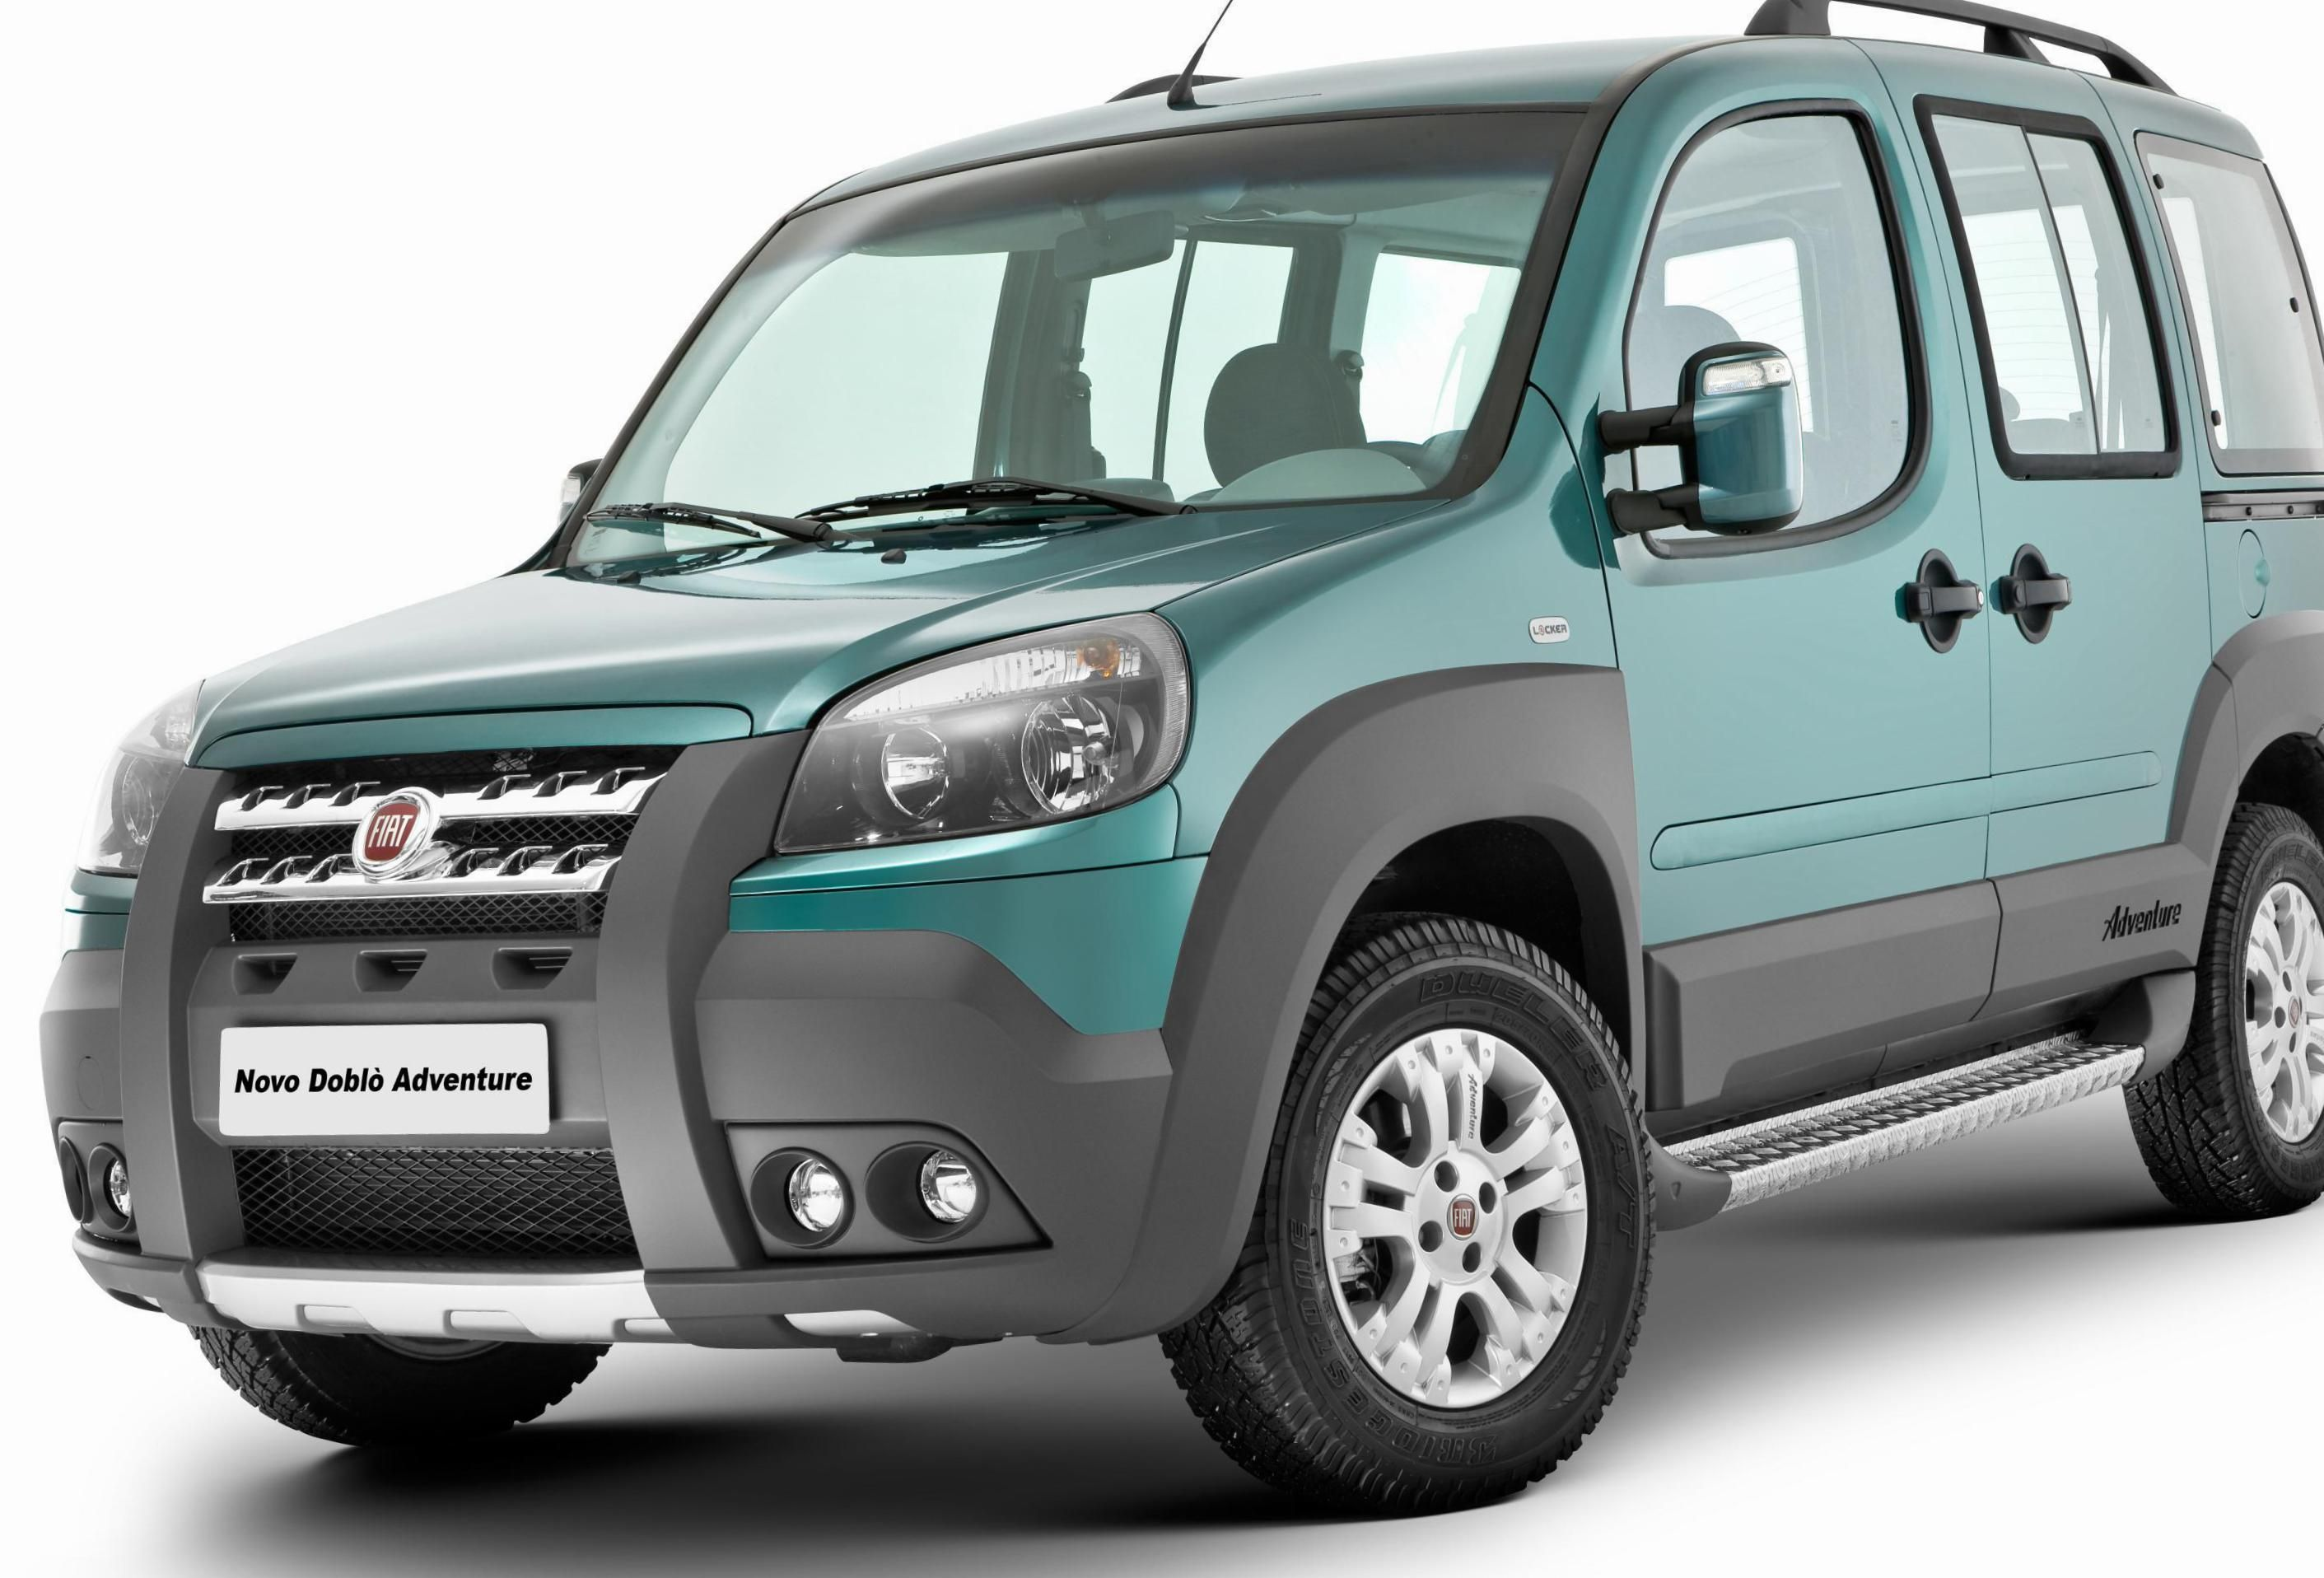 fiat doblo diesel 2014 en argentina fiat world test drive. Black Bedroom Furniture Sets. Home Design Ideas